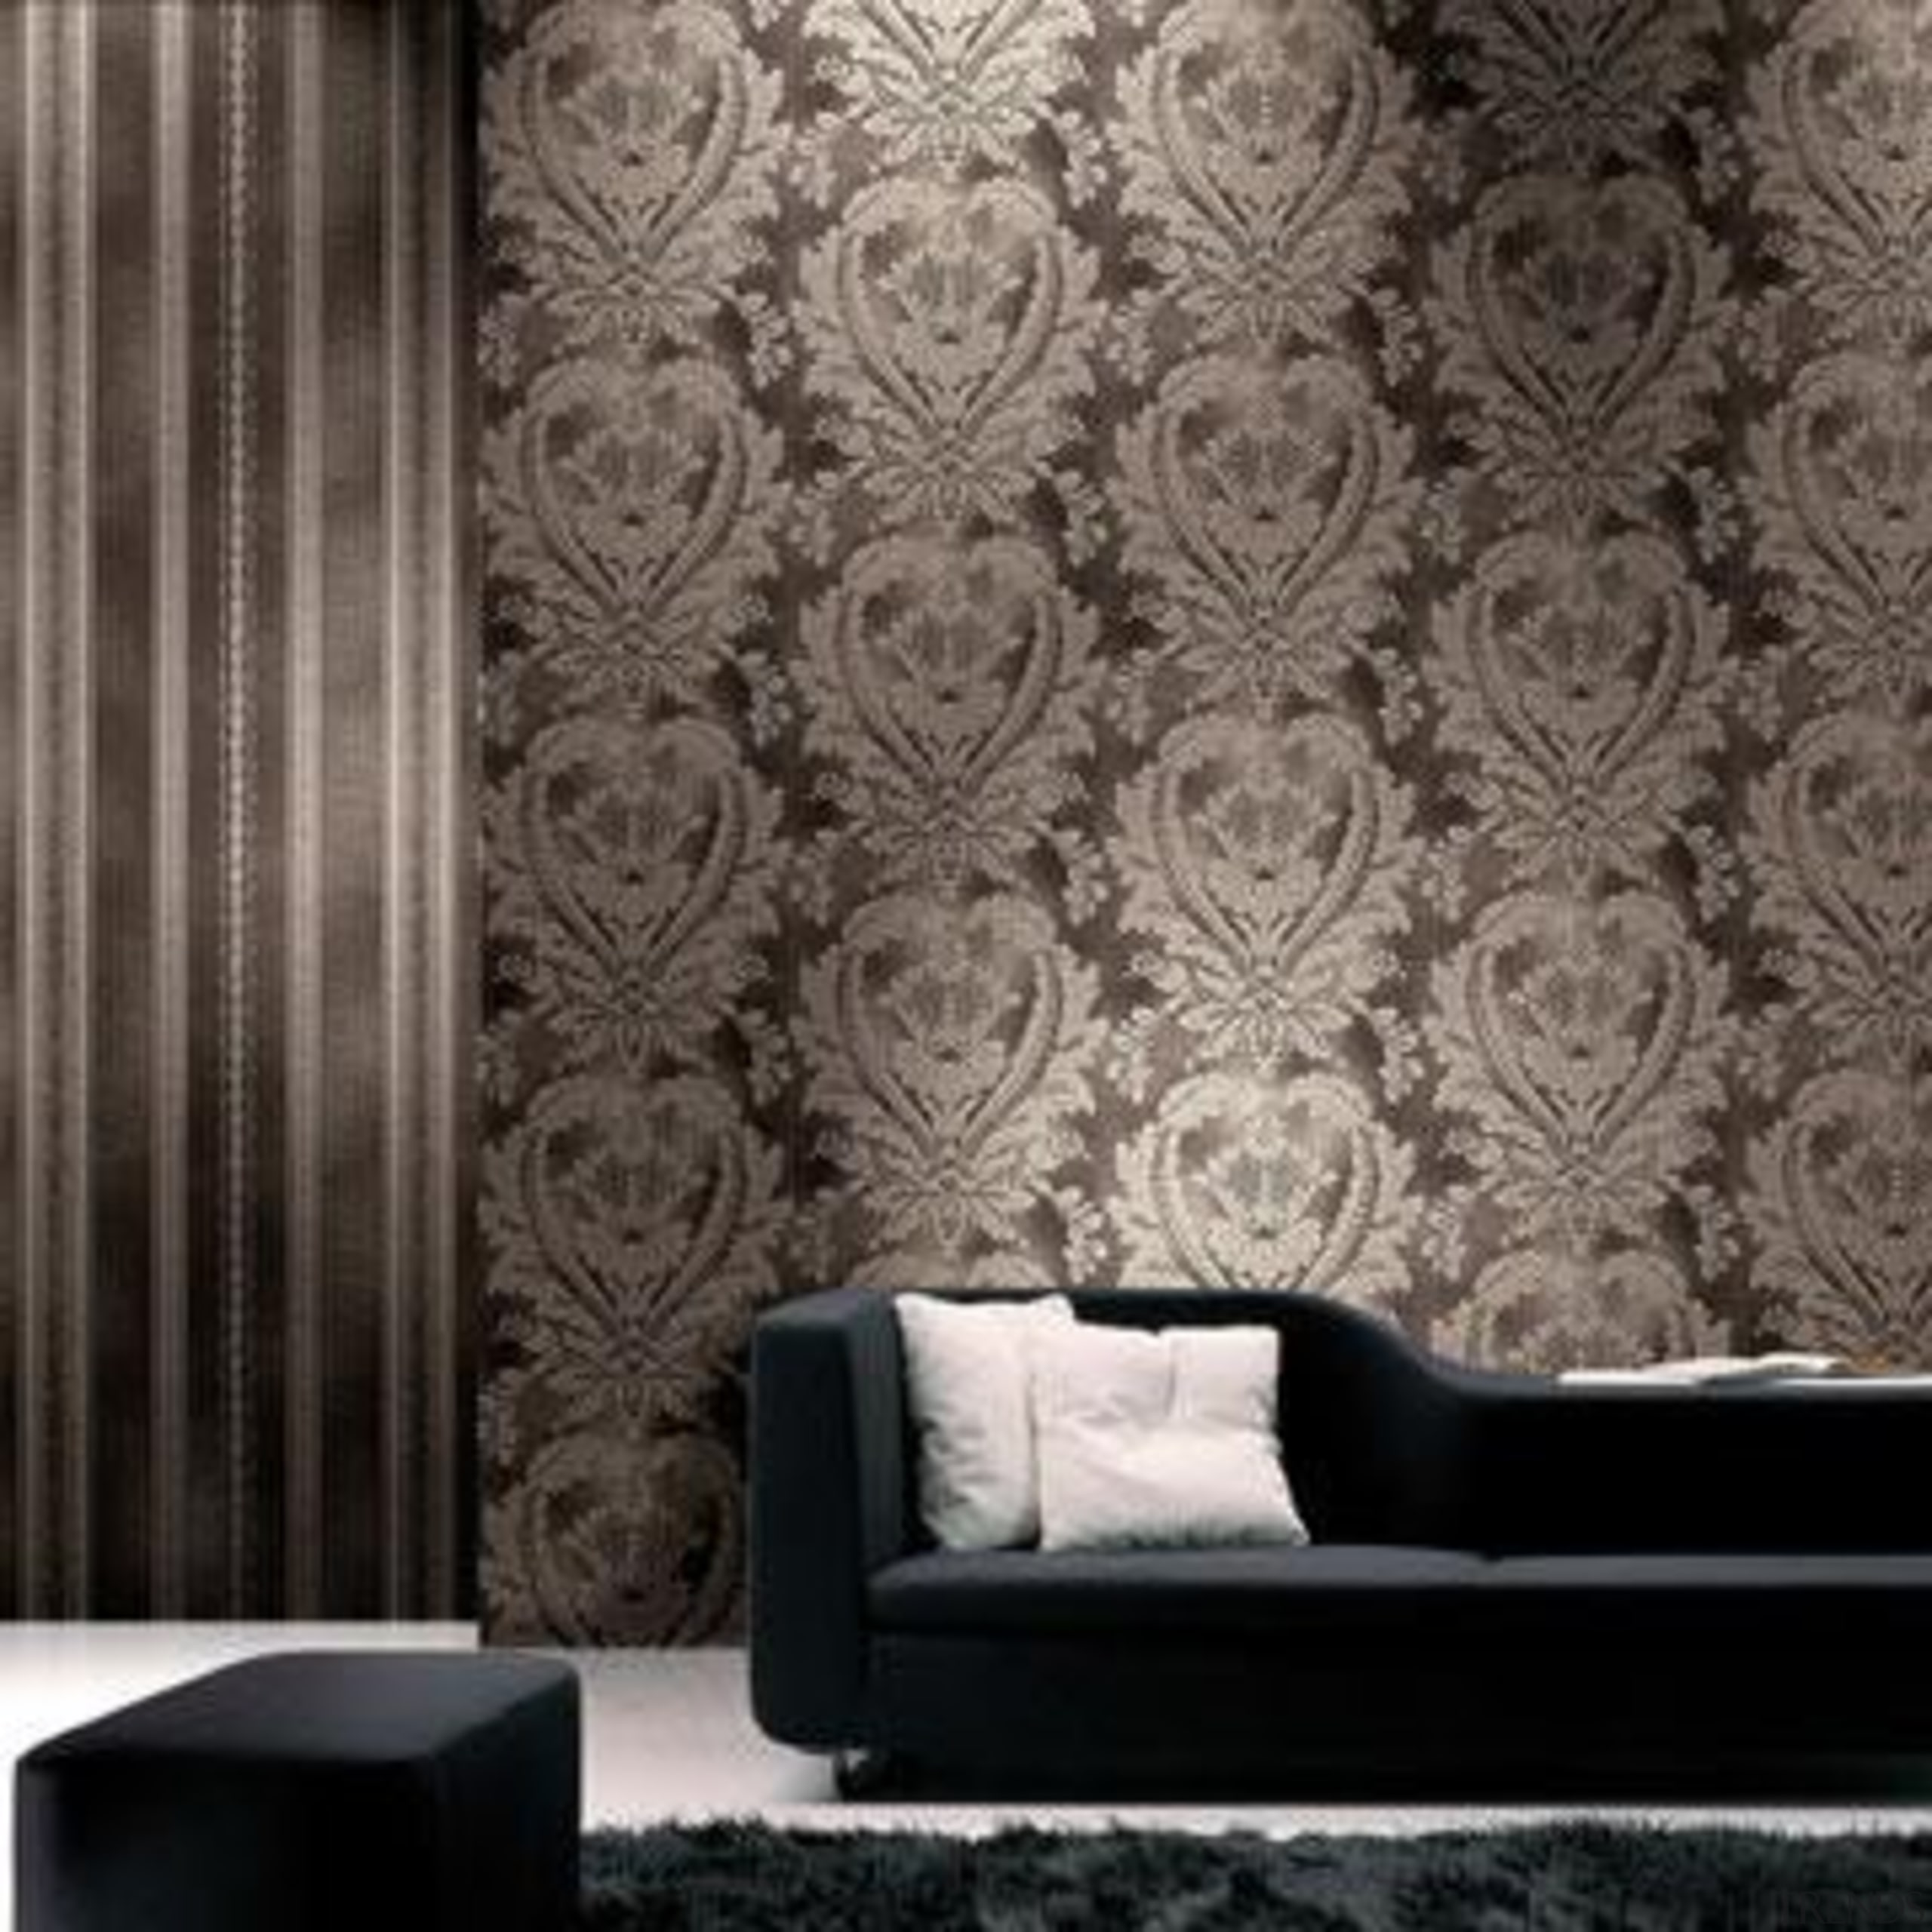 Modern Style Range - black and white   black and white, couch, curtain, decor, interior design, living room, pattern, wall, wallpaper, gray, black